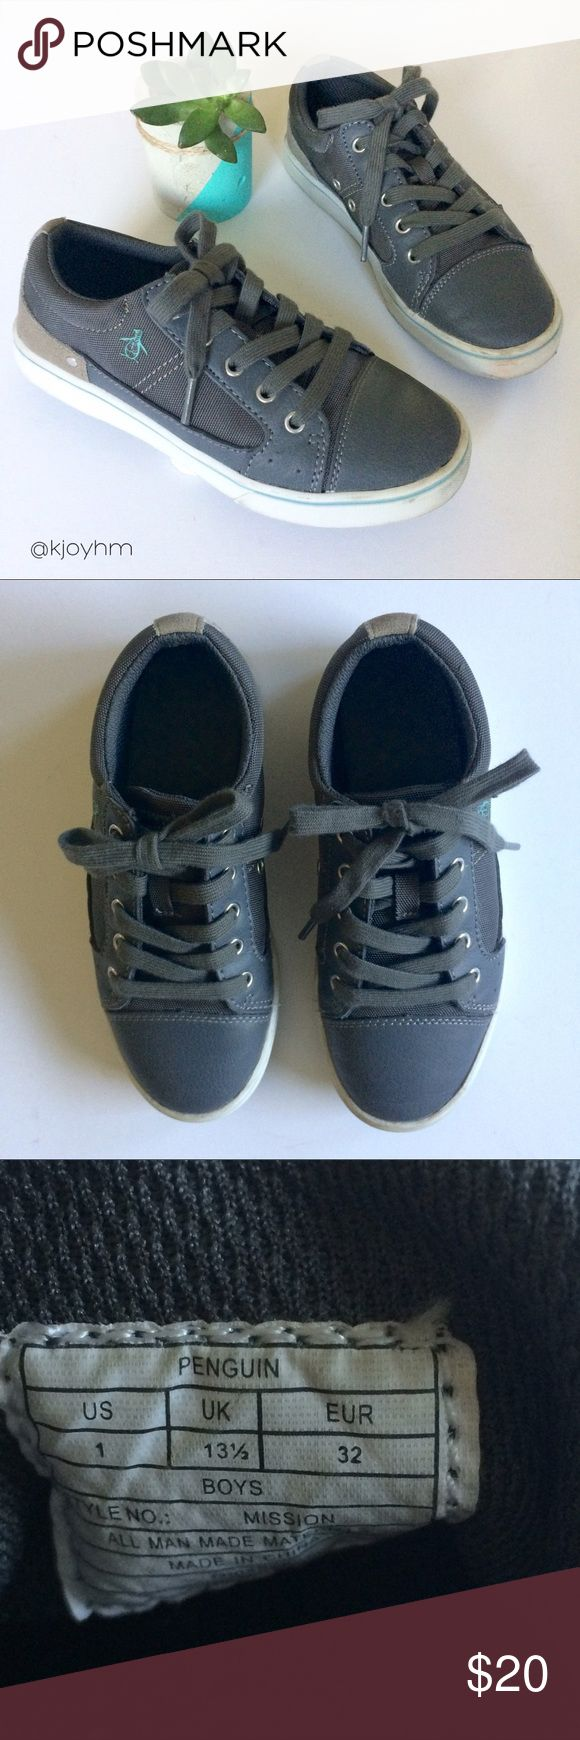 Penguin sneakers These classic sneakers are great for a stylish little boy who still wants to be comfy. Great with pants or shorts. In excellent condition - only worn 2-3 times. Original Penguin Shoes Sneakers